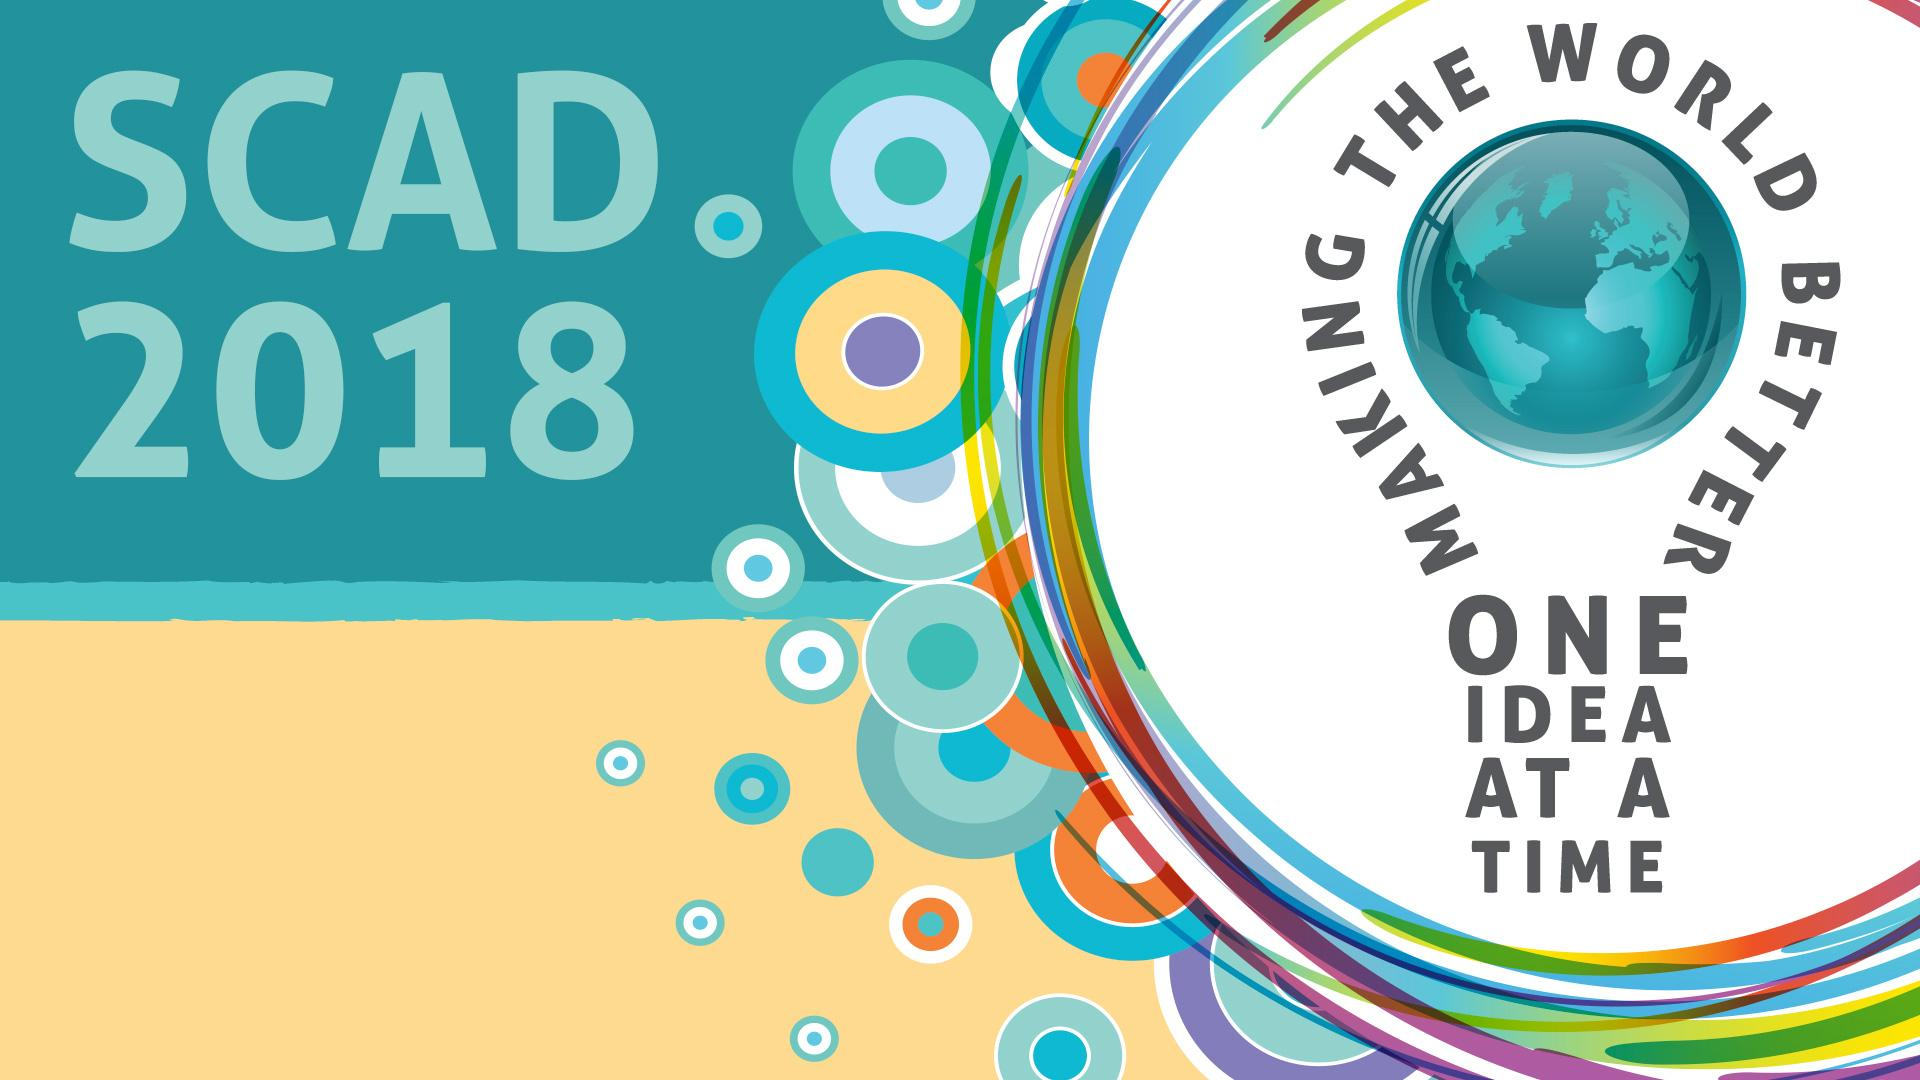 Submission Period Open for SCAD 2018